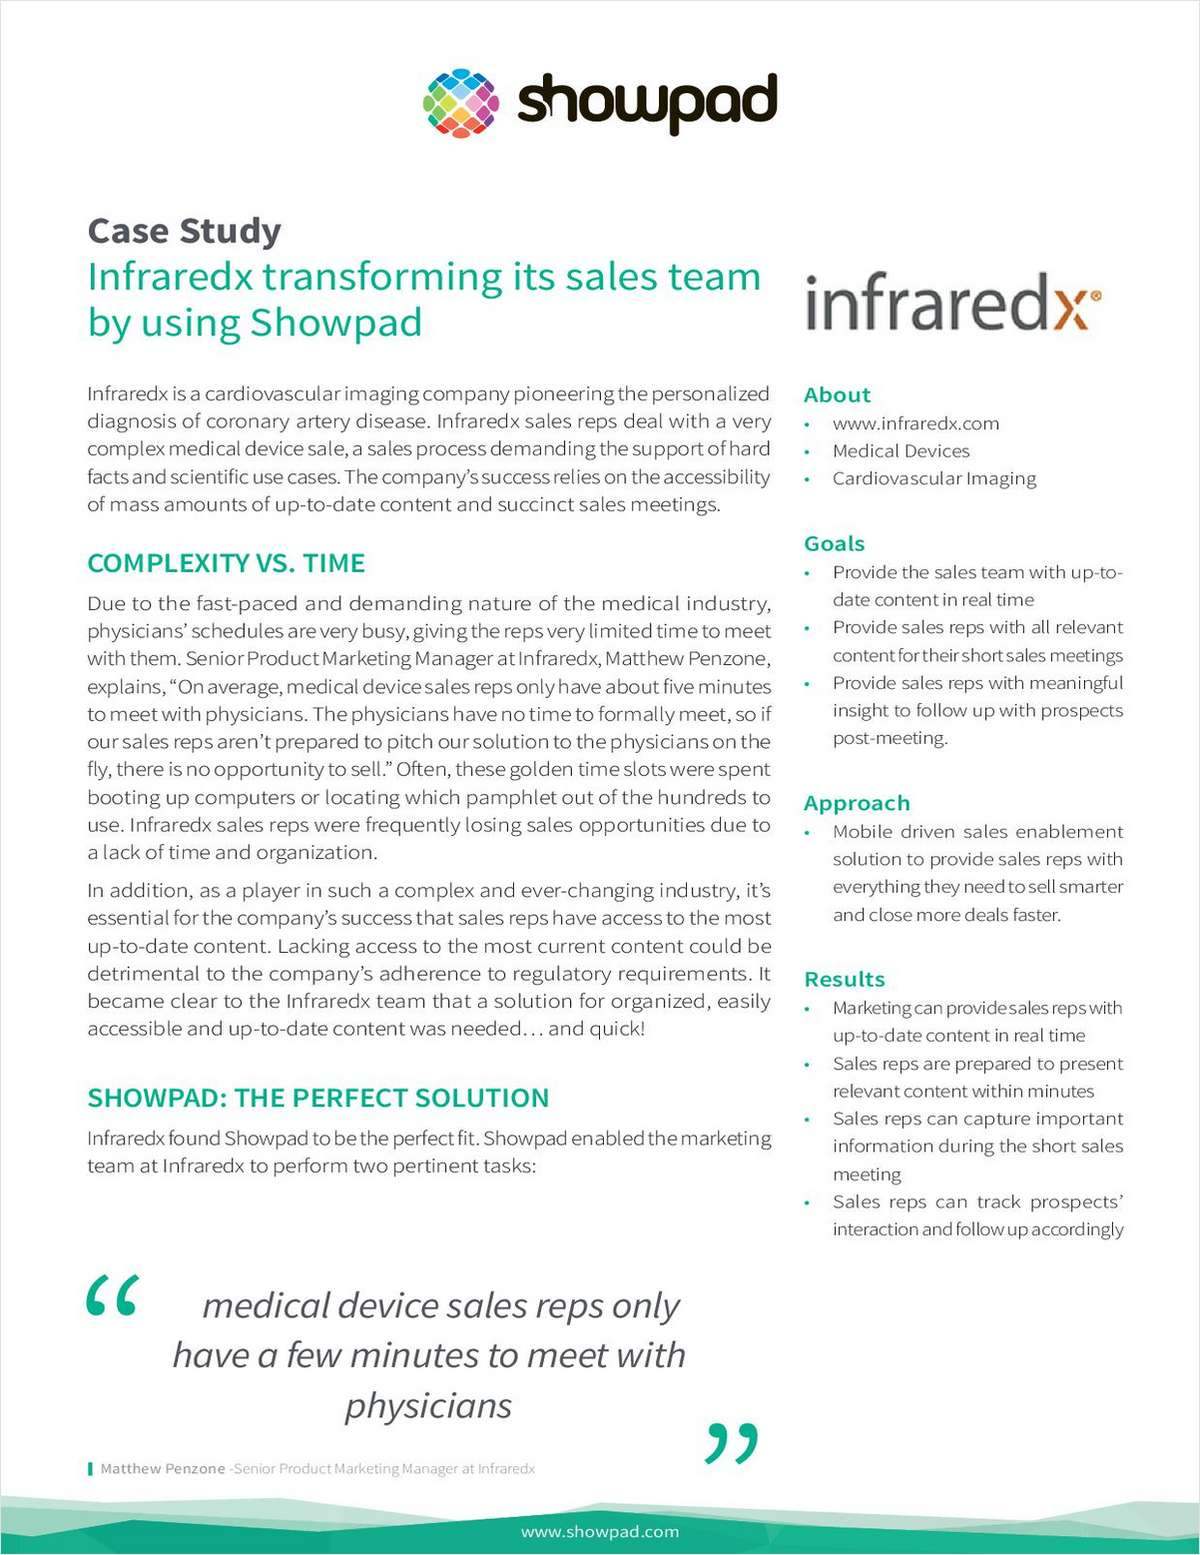 Infraredx - Medical Devices Industry is Transforming Sales Productivity